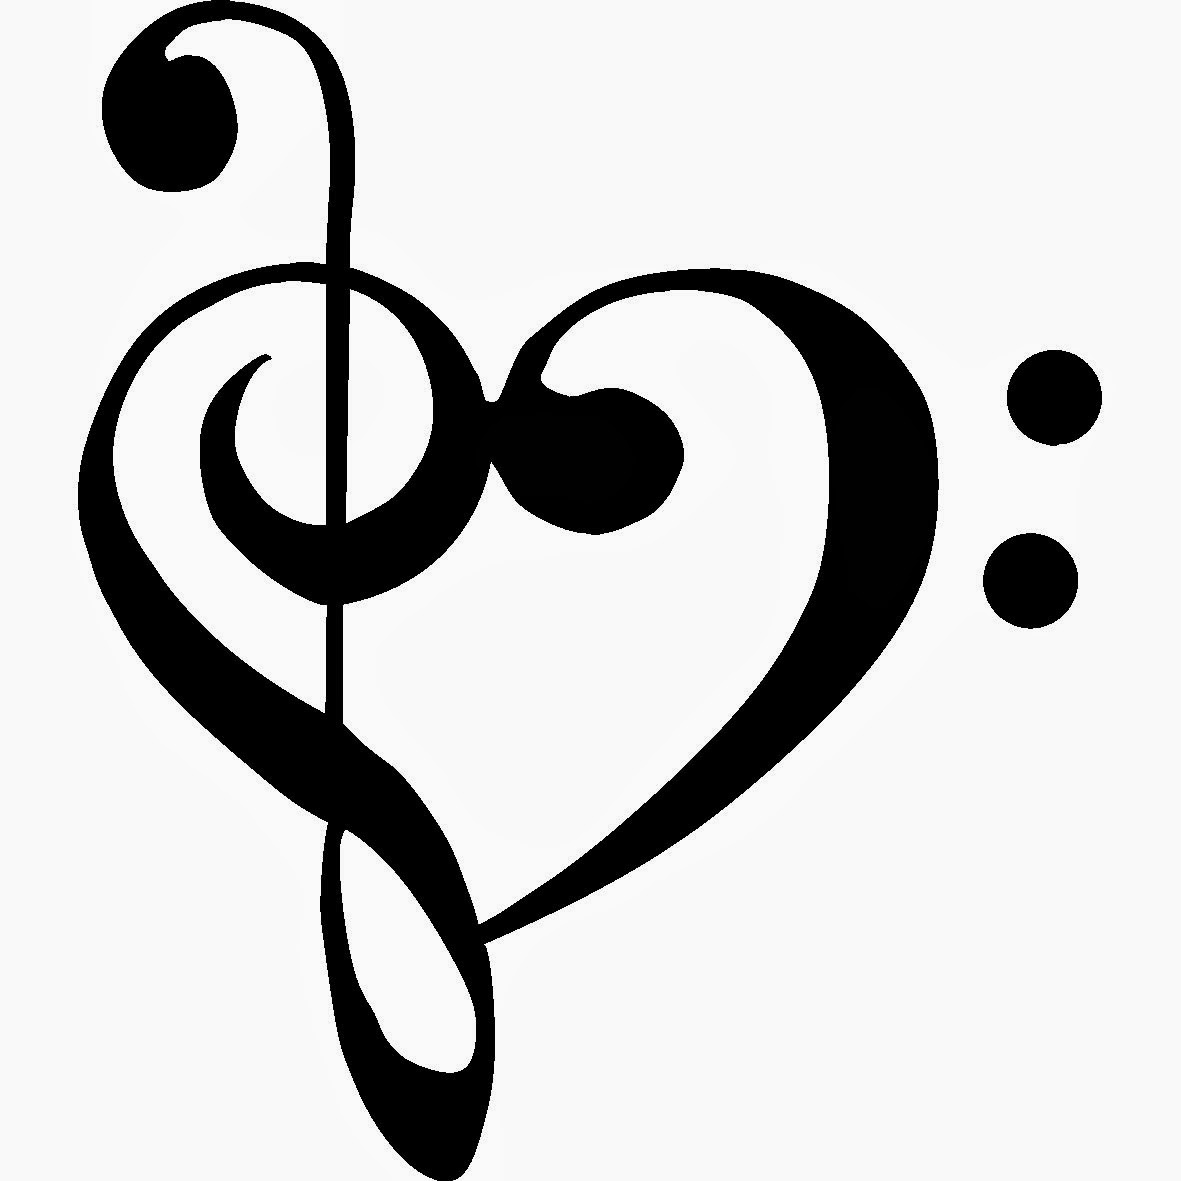 Heart Music Notes Clipart - Clipart Kid